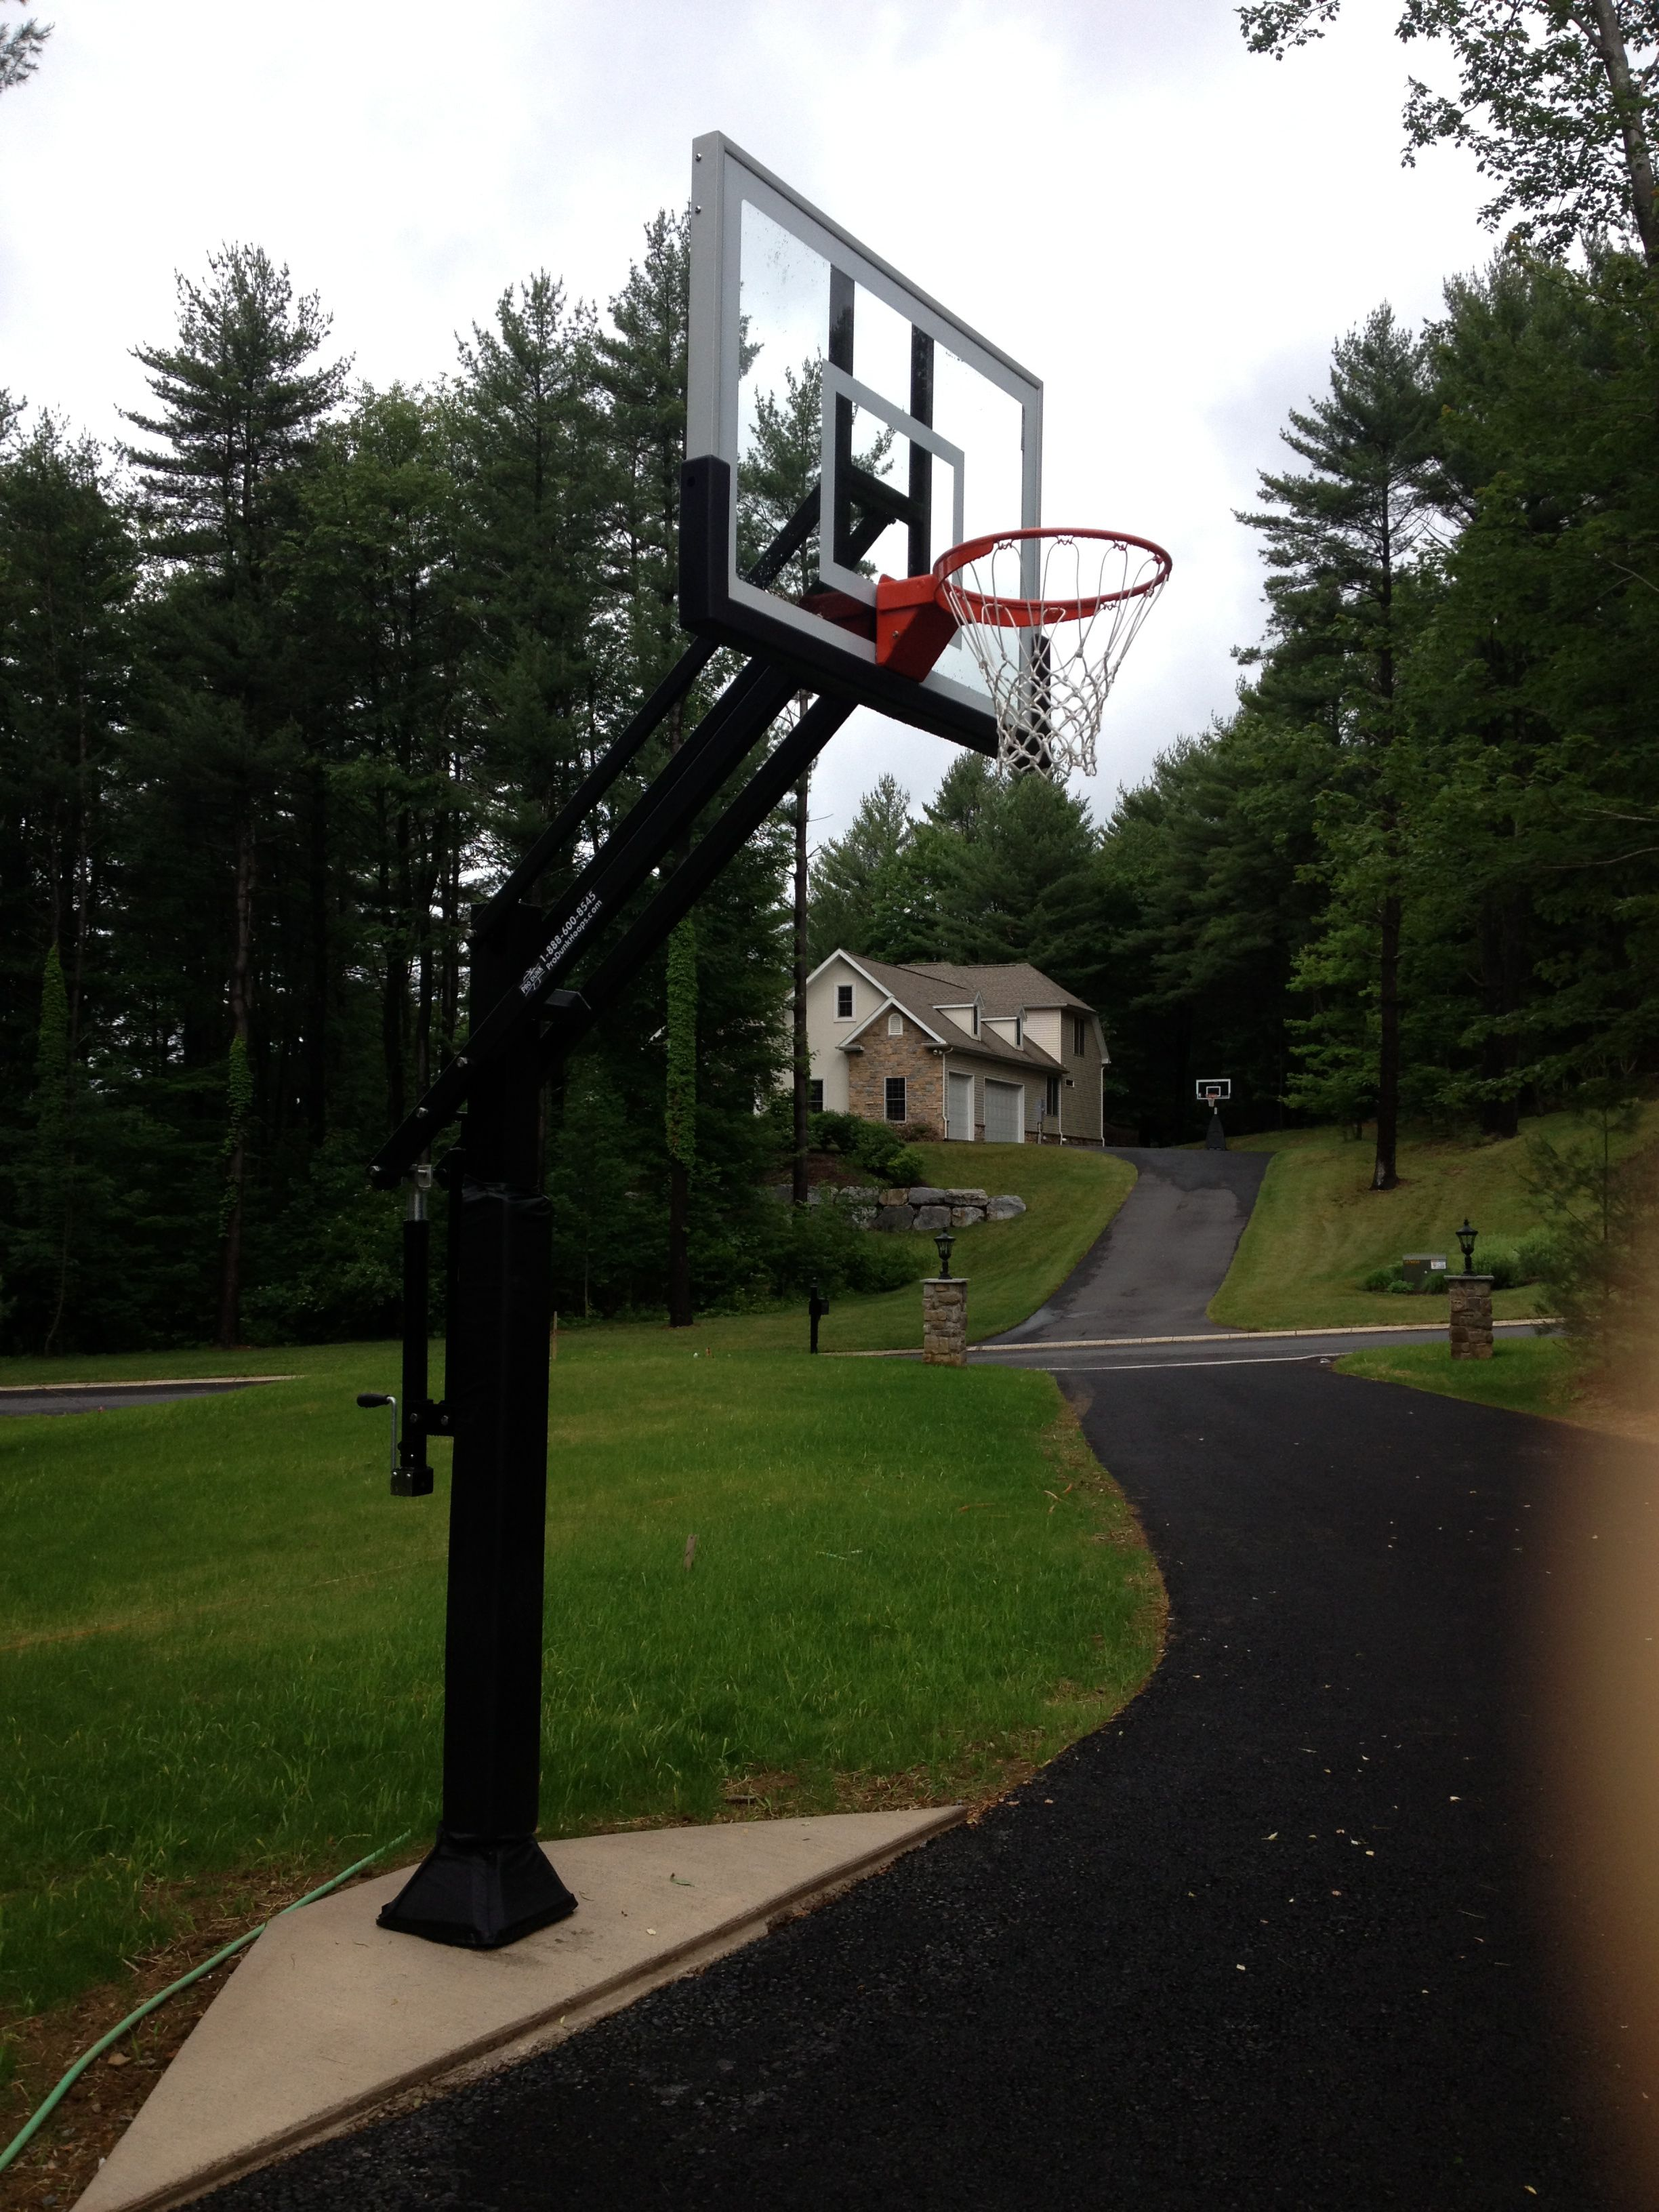 Step Out From The 2 Car Garage And This Pro Dunk Silver Basketball System Is Ready